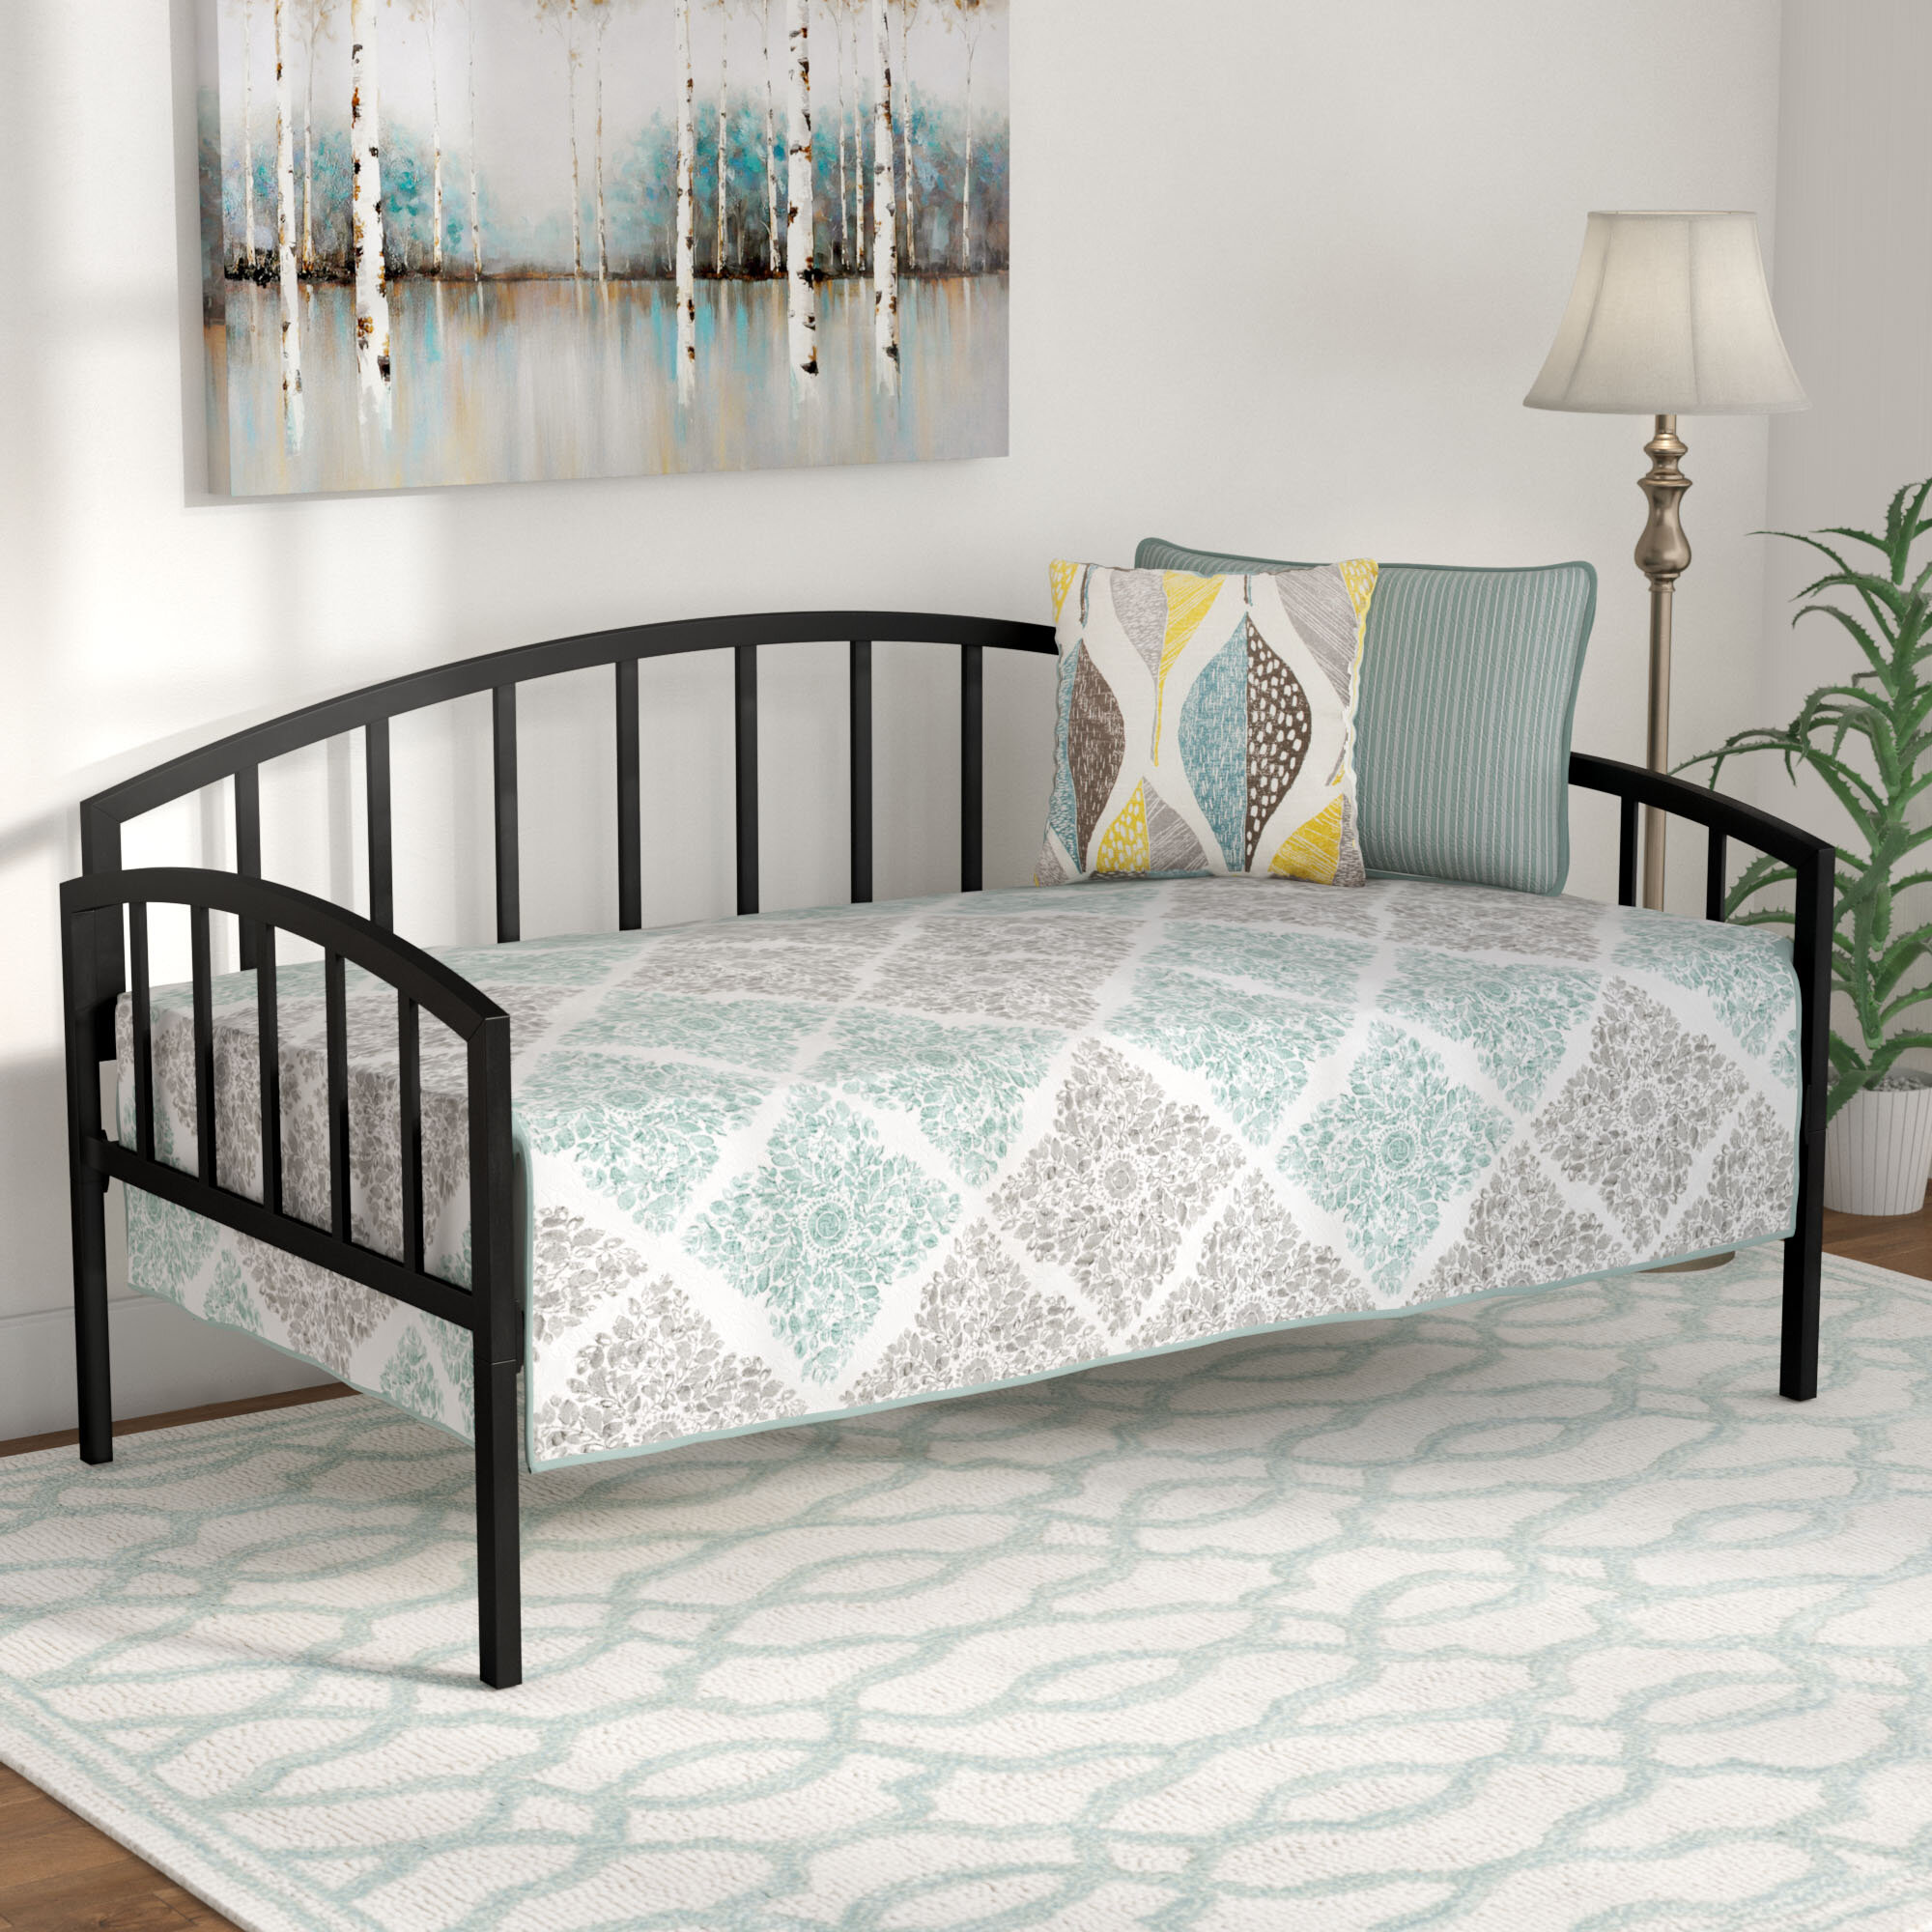 King Size Daybed | Wayfair